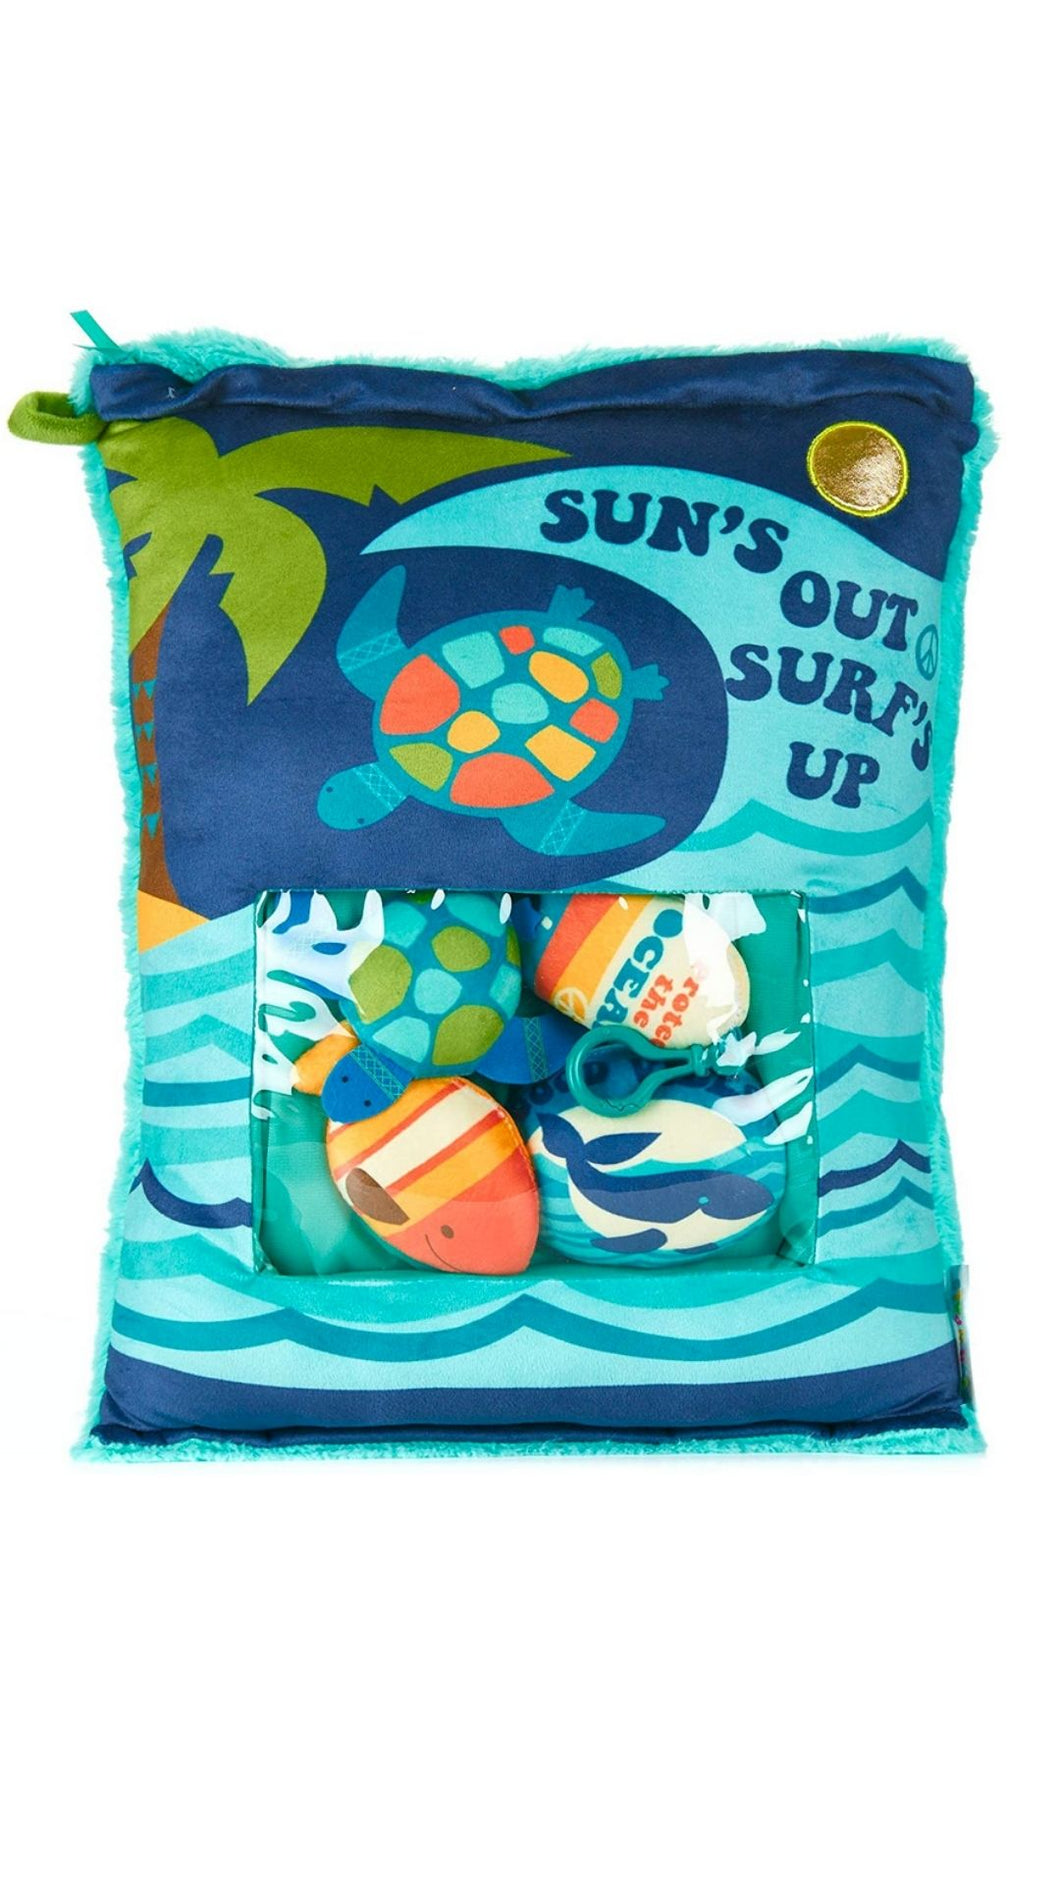 Surfs Up Plush Pillow